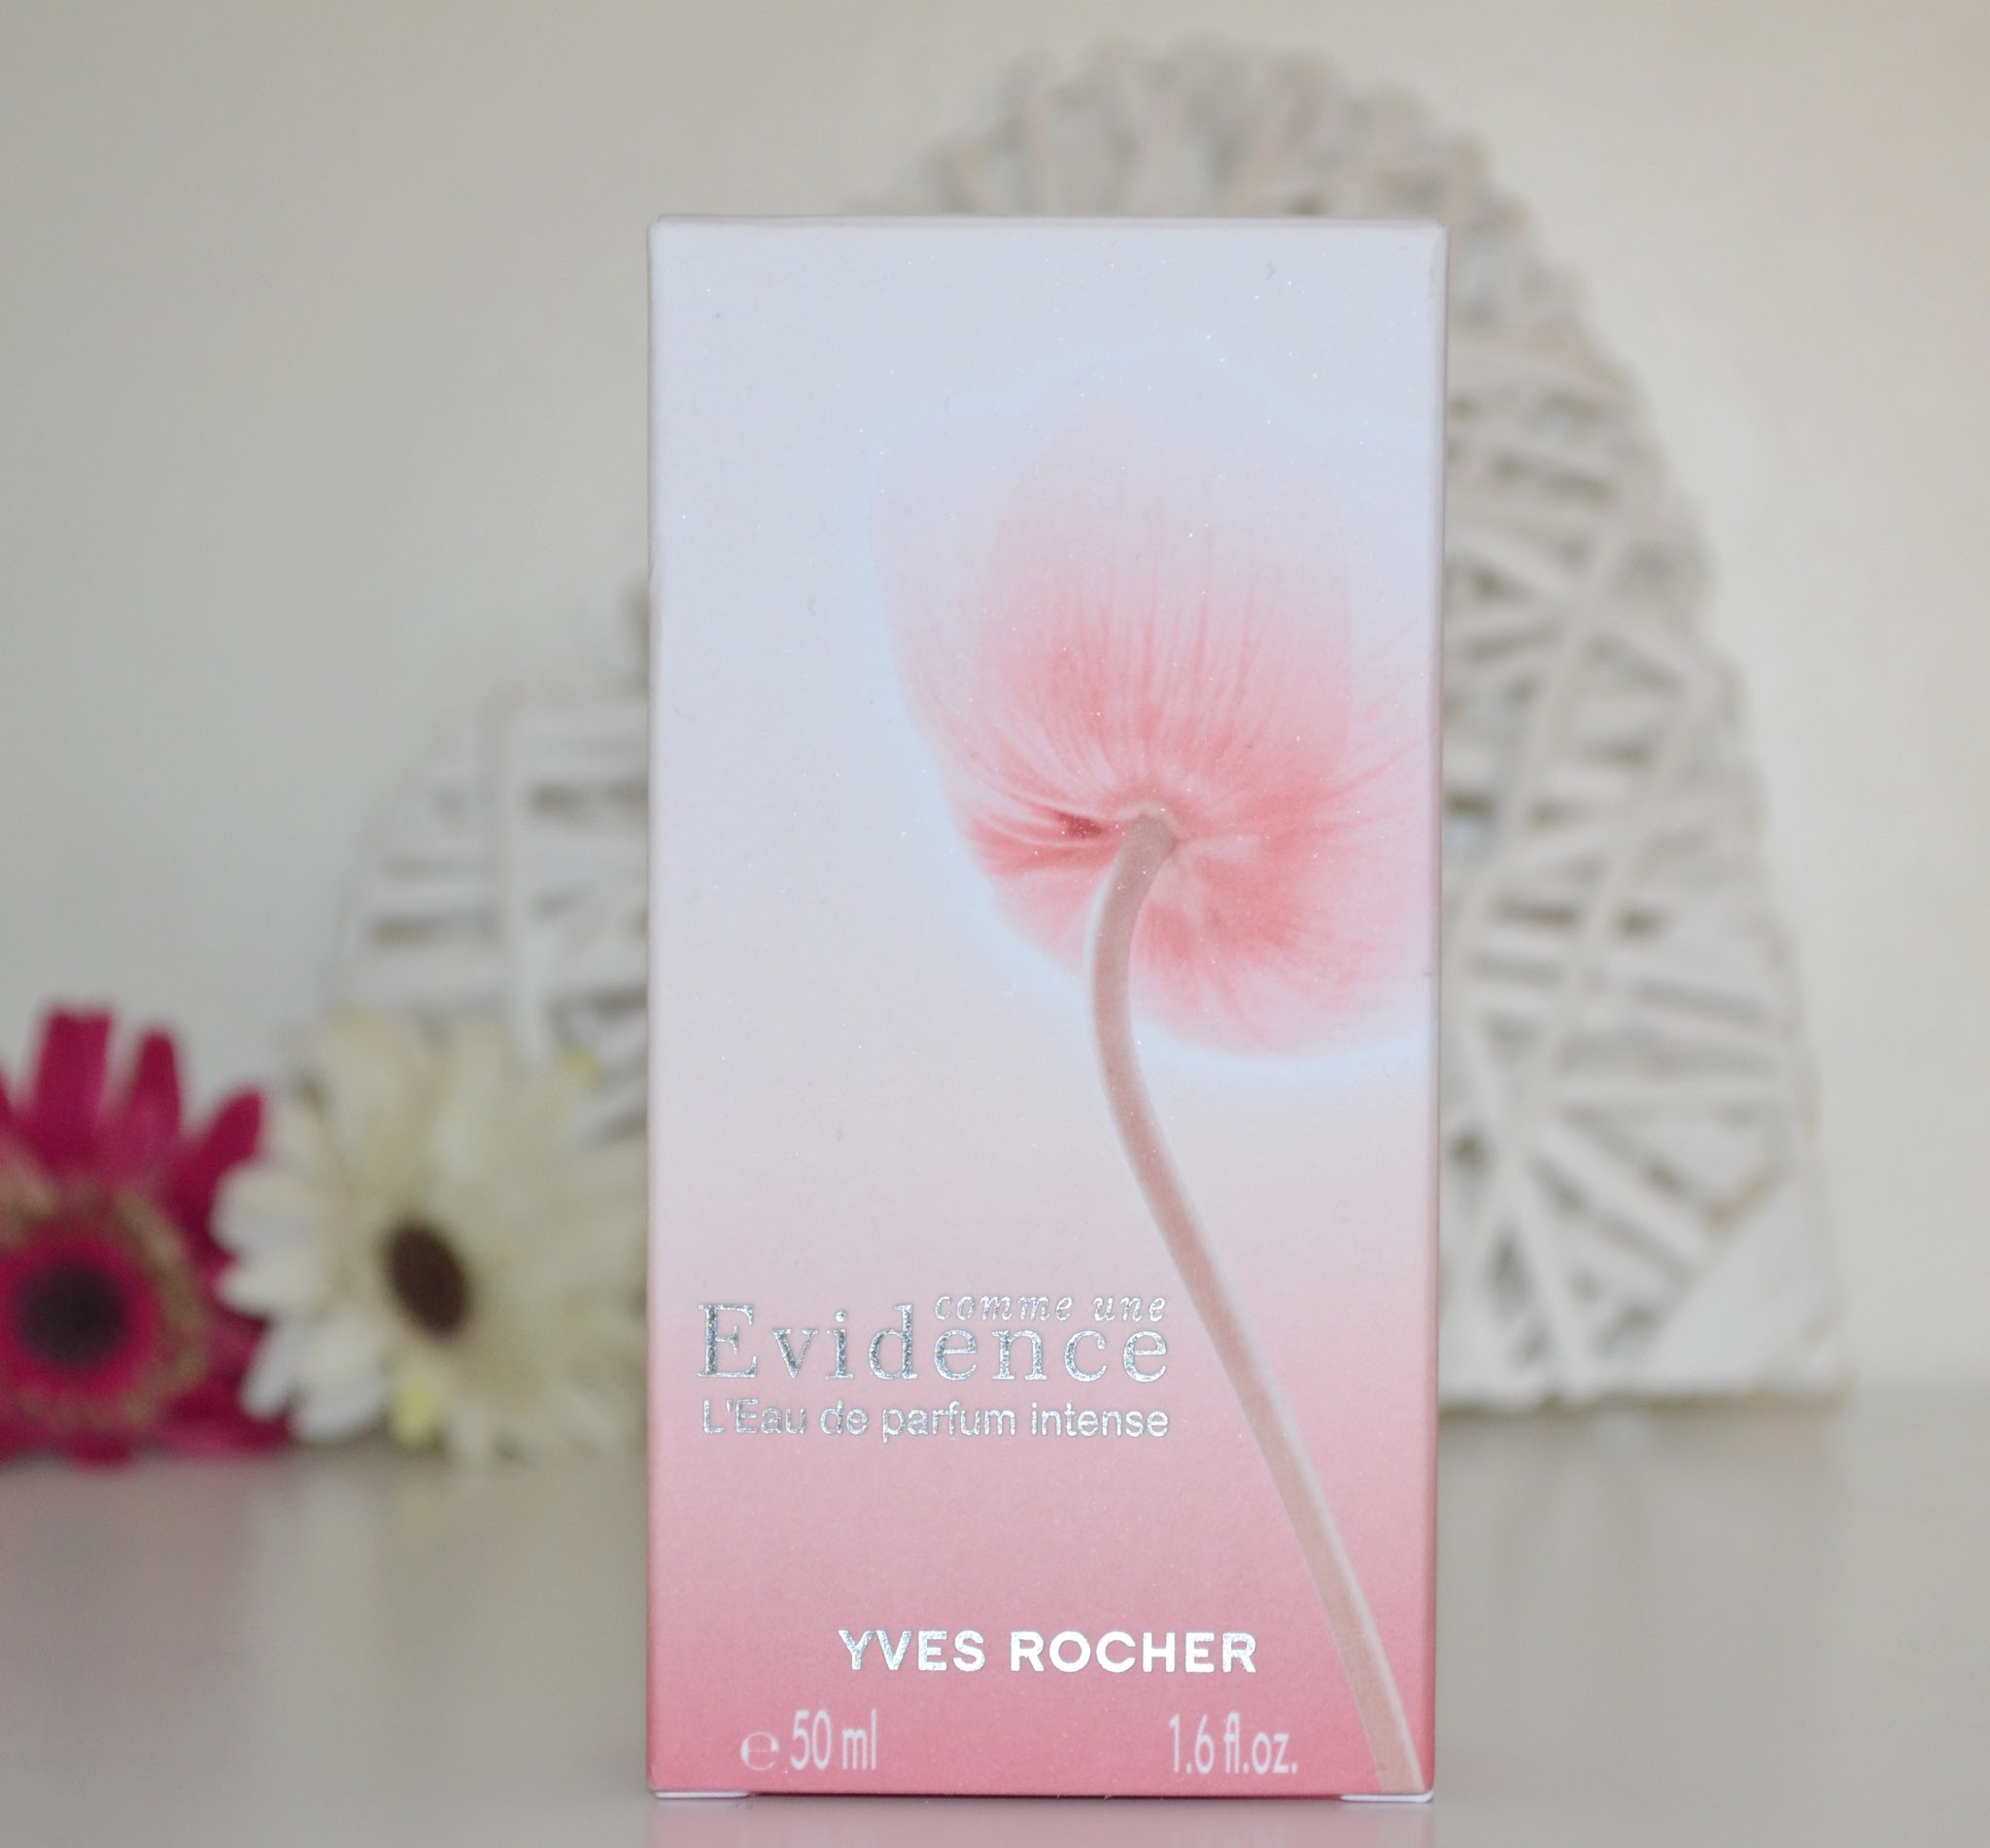 yves rocher, yves rocher perfume, yves rocher perfume review, french perfume, yves rocher evidence, yves rocher evidence review, beauty blog, blog review